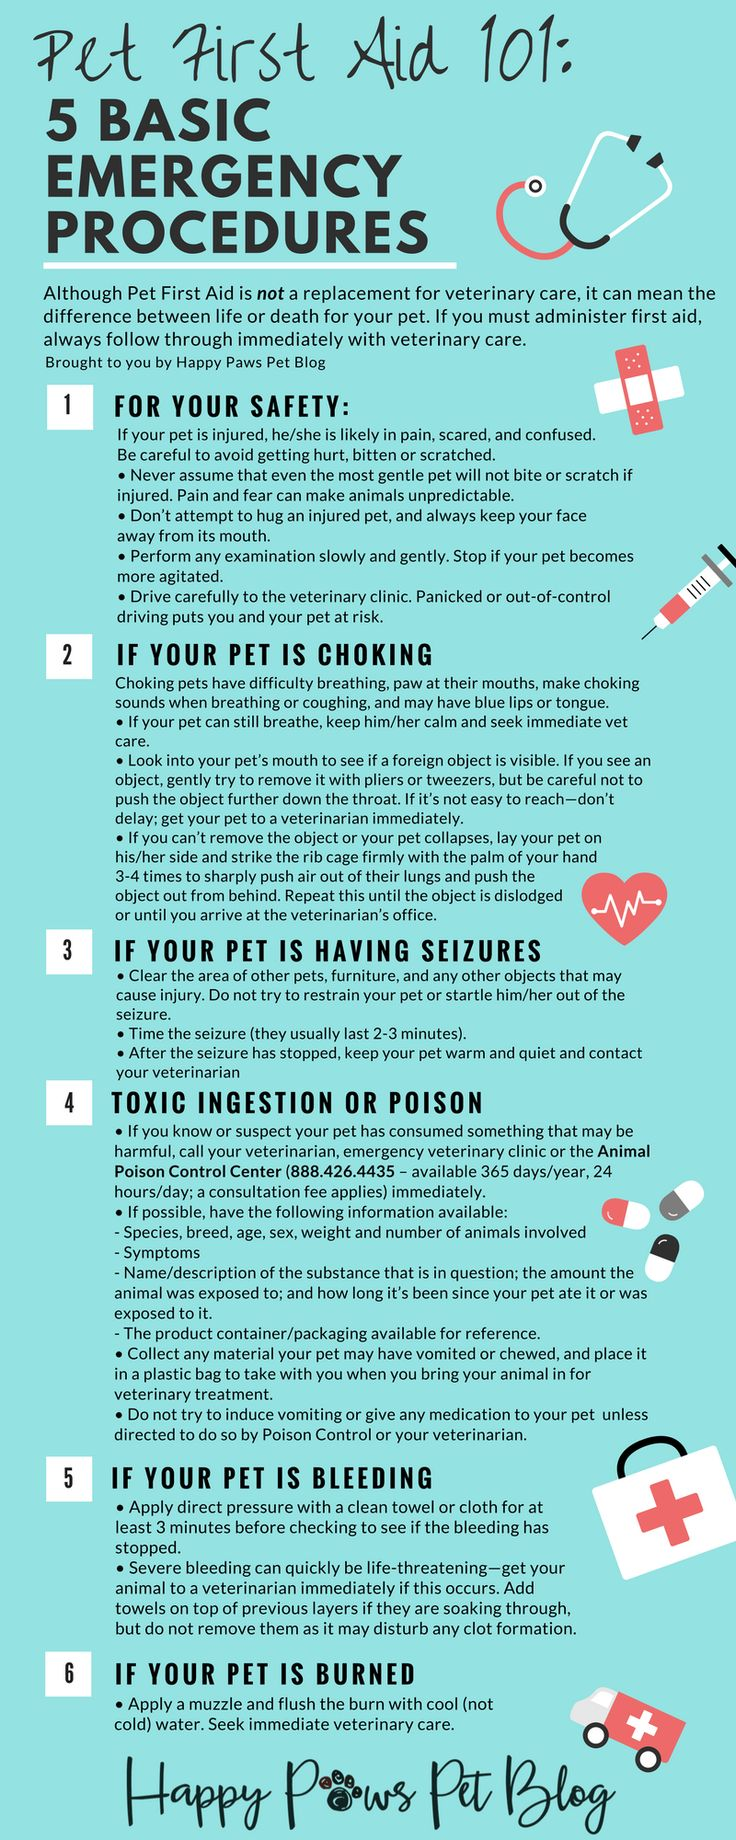 Although first aid is not a replacement for going to your veterinarian, it can mean the difference between life or death for your pet. If you must administer first aid, always follow through immediately with veterinary care. Here's some good advice on dealing with the top 5 basic emergencies; choking, seizures, toxic ingestion or poison, bleeding and burns.